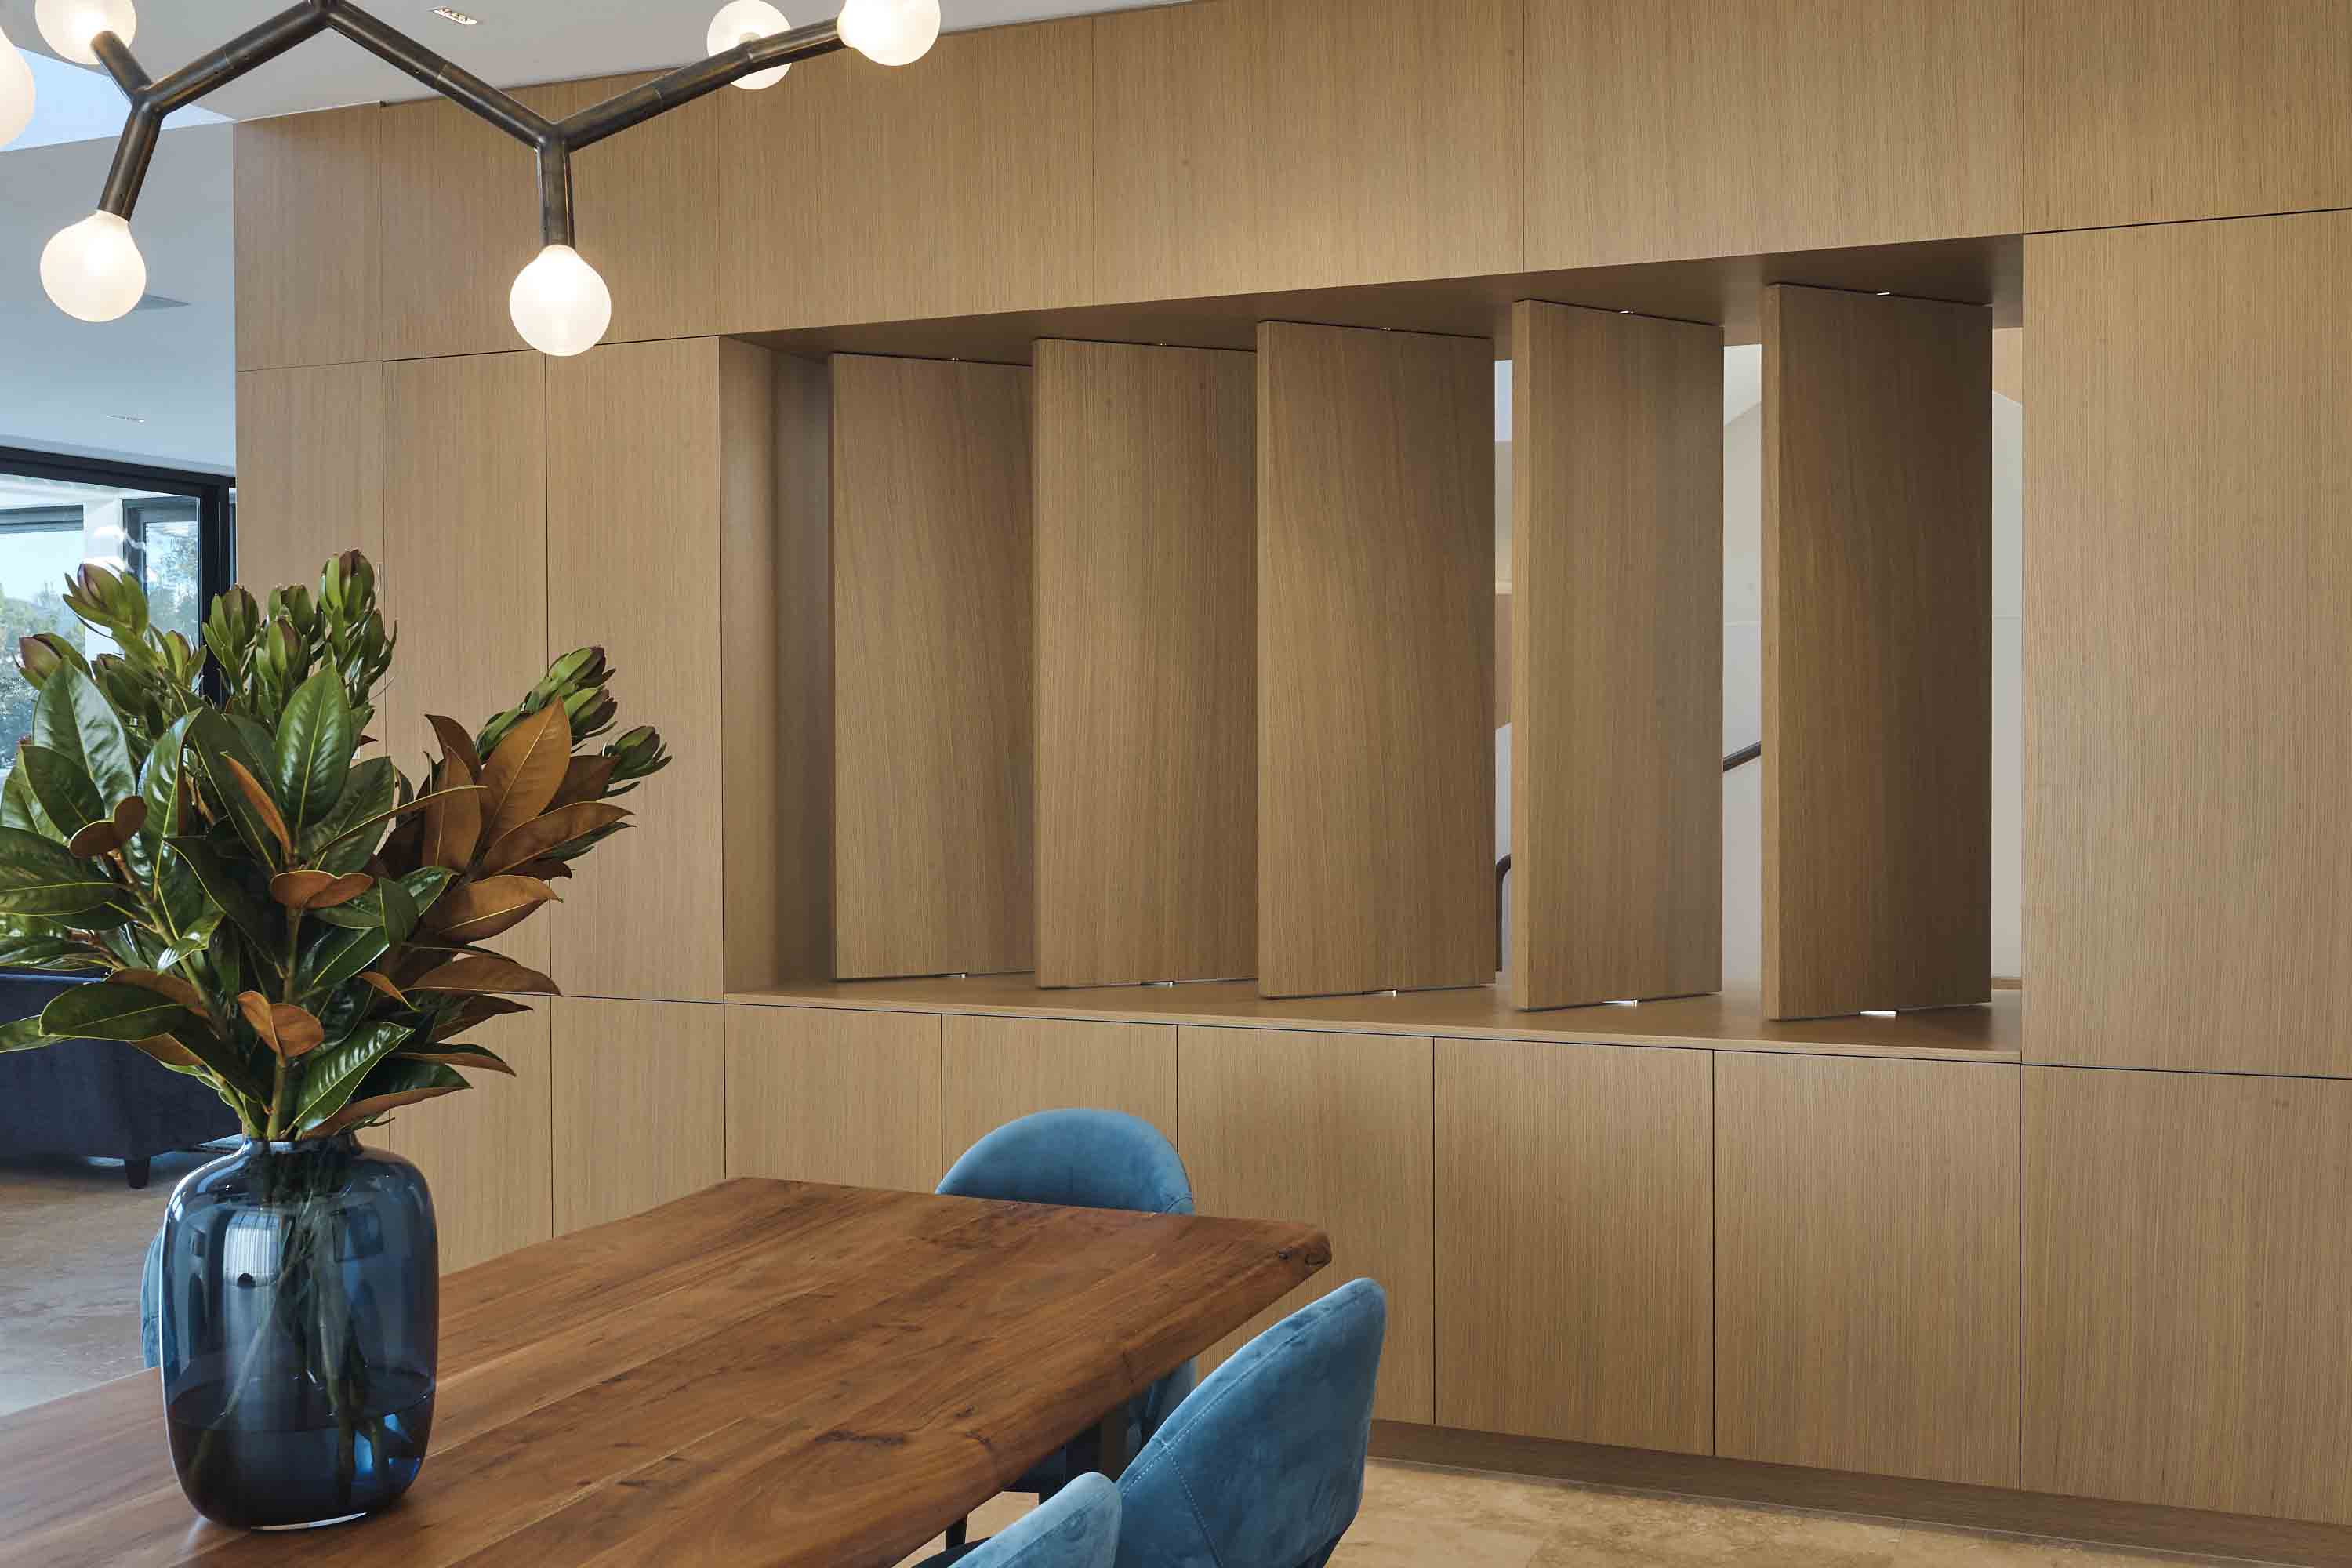 Pivoting louver doors by Space Joinery